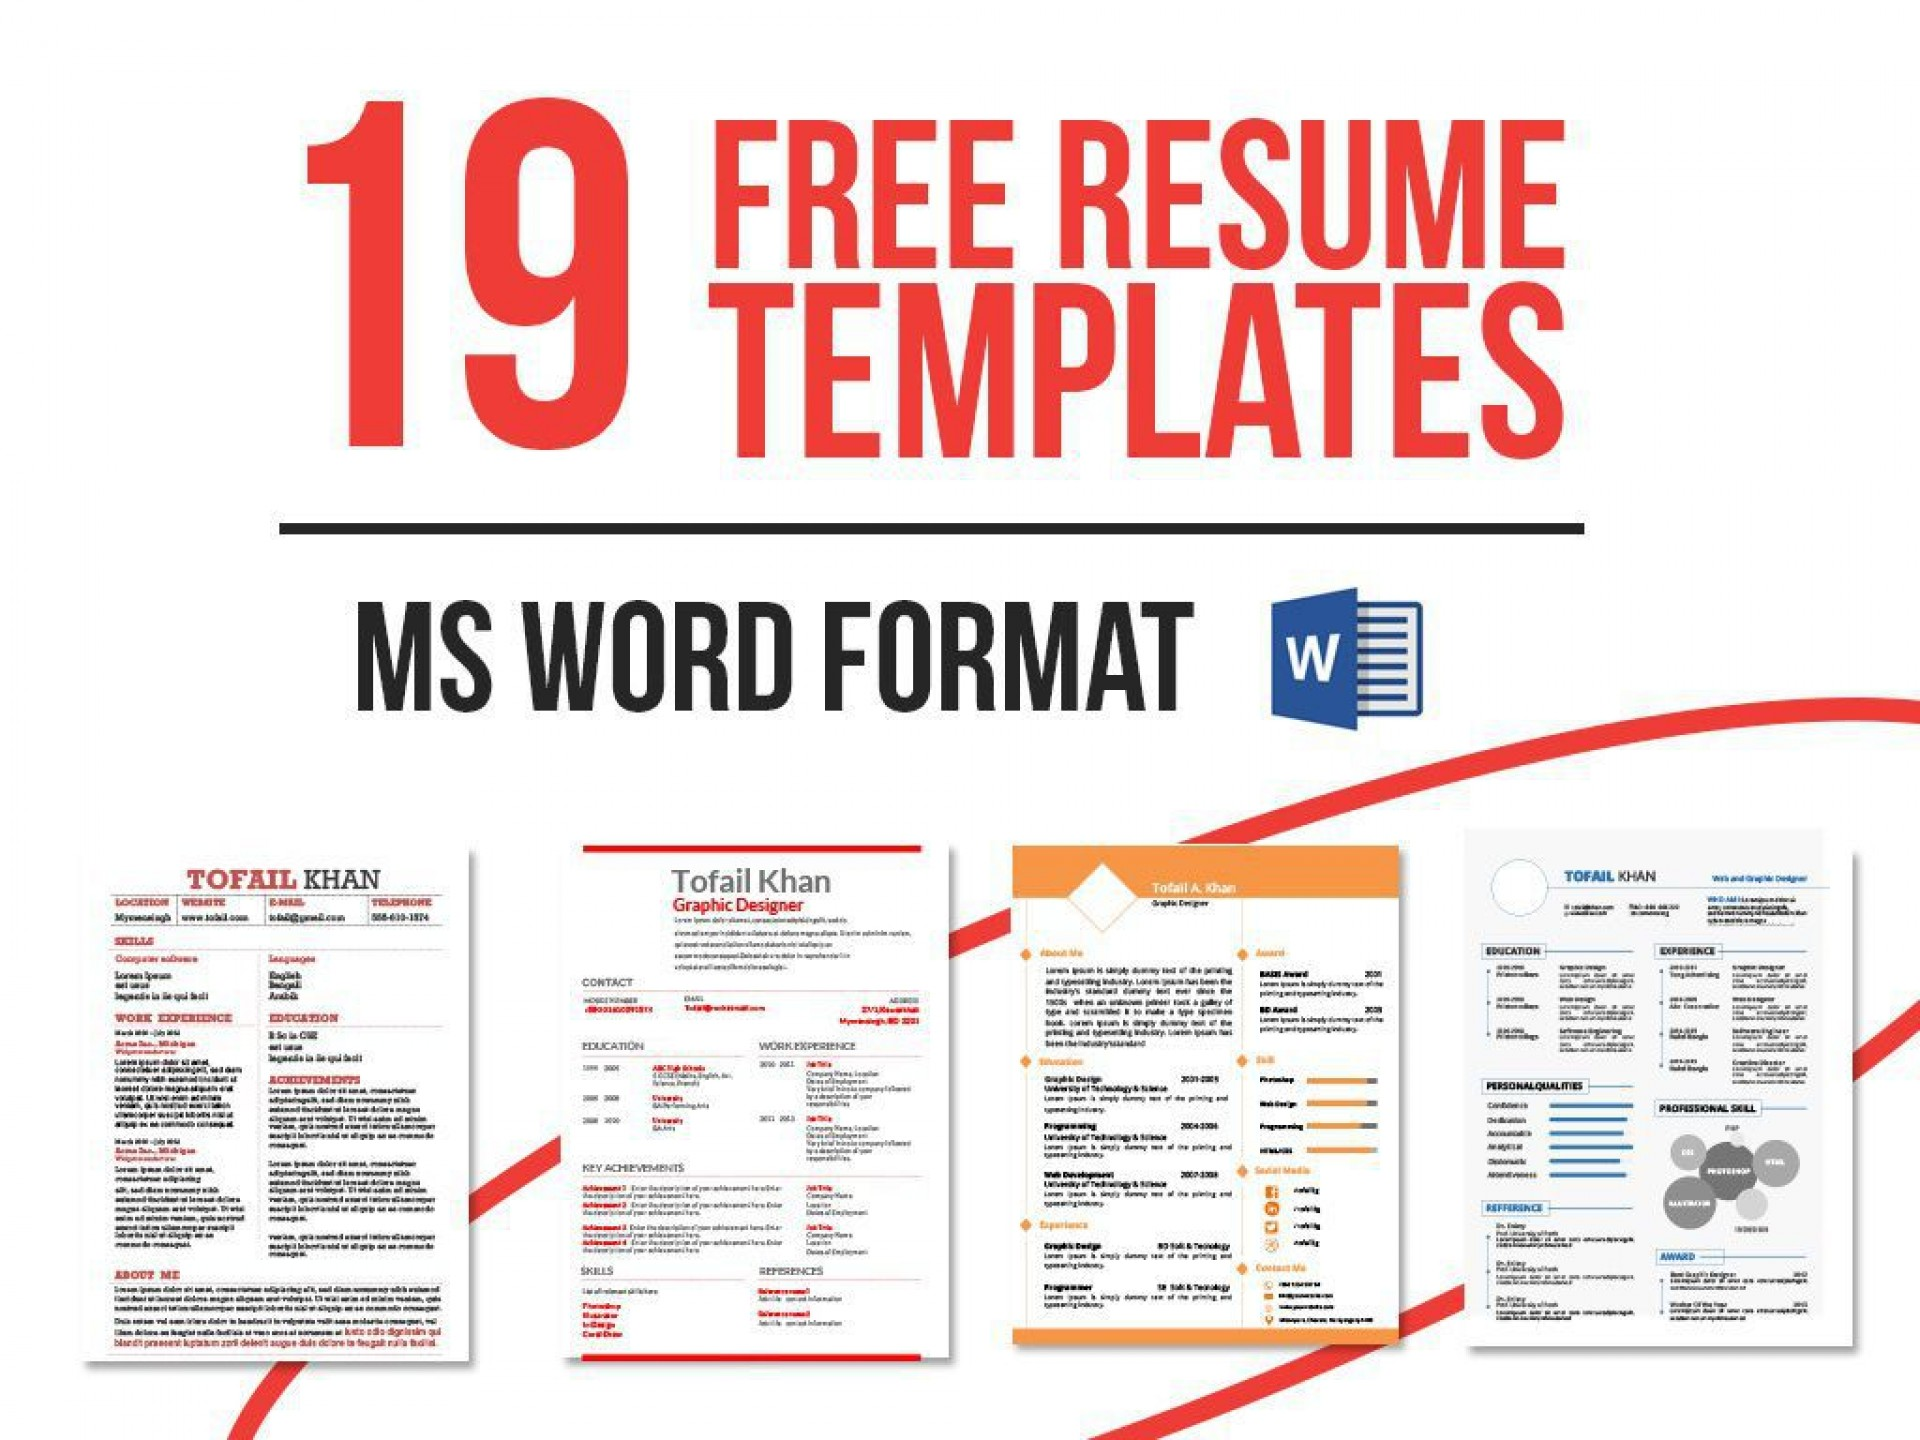 003 Unbelievable Download Resume Template Free Microsoft Word Picture  2010 Attractive M Simple For1920